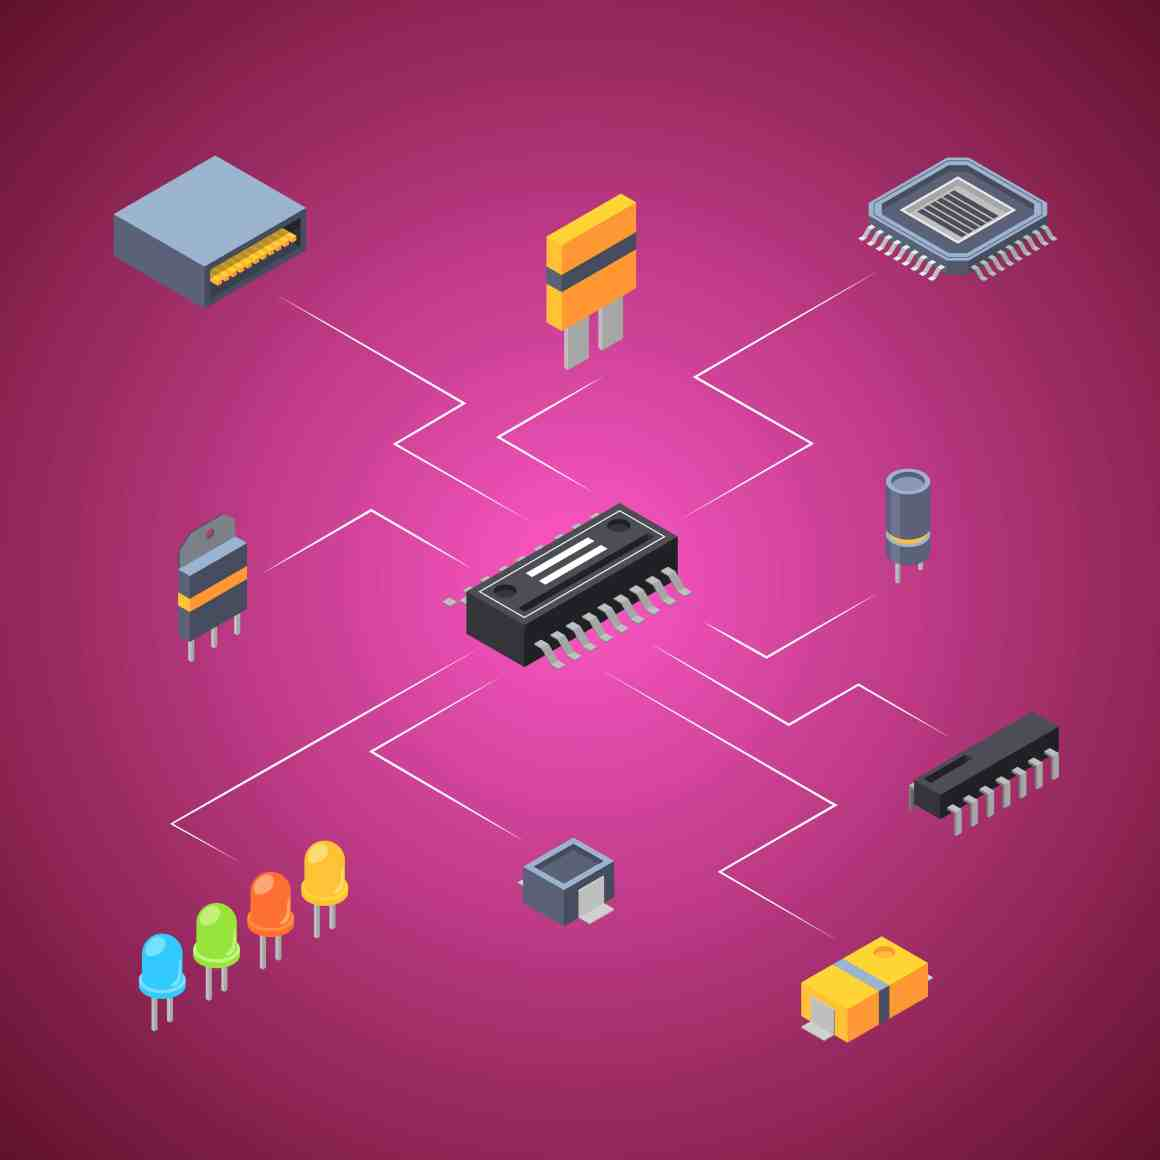 Vector isometric transistor and electronic parts icons infographic connection concept illustration